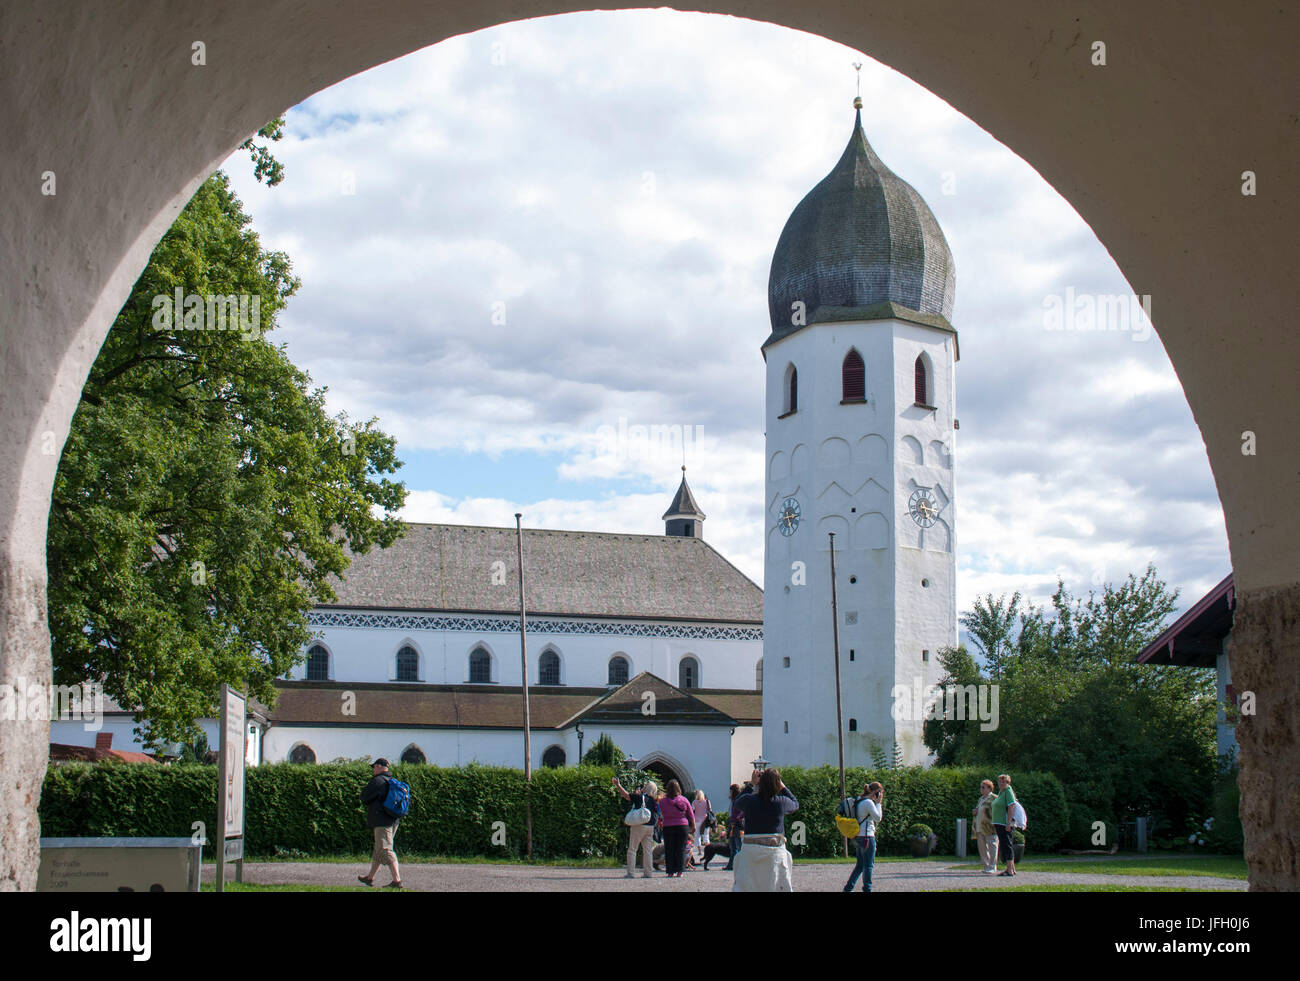 Minster, cathedral, Fraueninsel in Lake Chiemsee, cloister of Frauenwörth, Fraueninsel, Frauensee Chiemsee, Lake Stock Photo